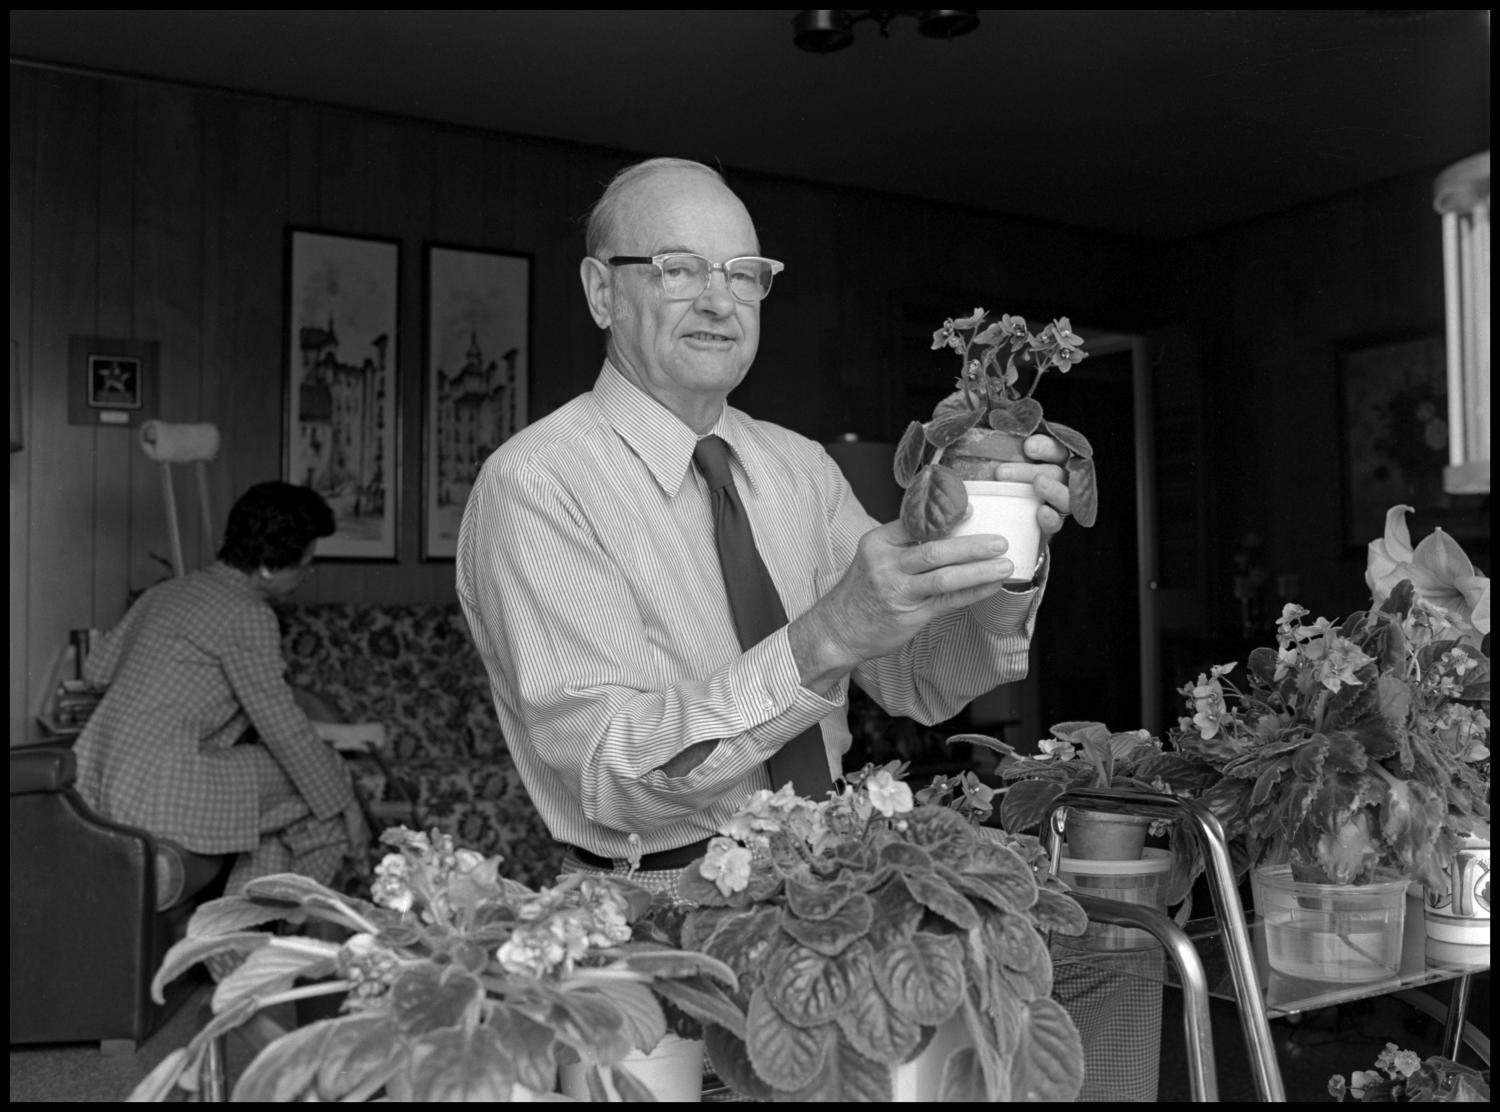 [Garland Brookshear placing pansies in new pot], Photograph of Garland Brookshear, a member of the Management faculty at NTSU, placing a potted plant, that appears to be pansies, into a larger pot. He is being photographed for his retirement.,